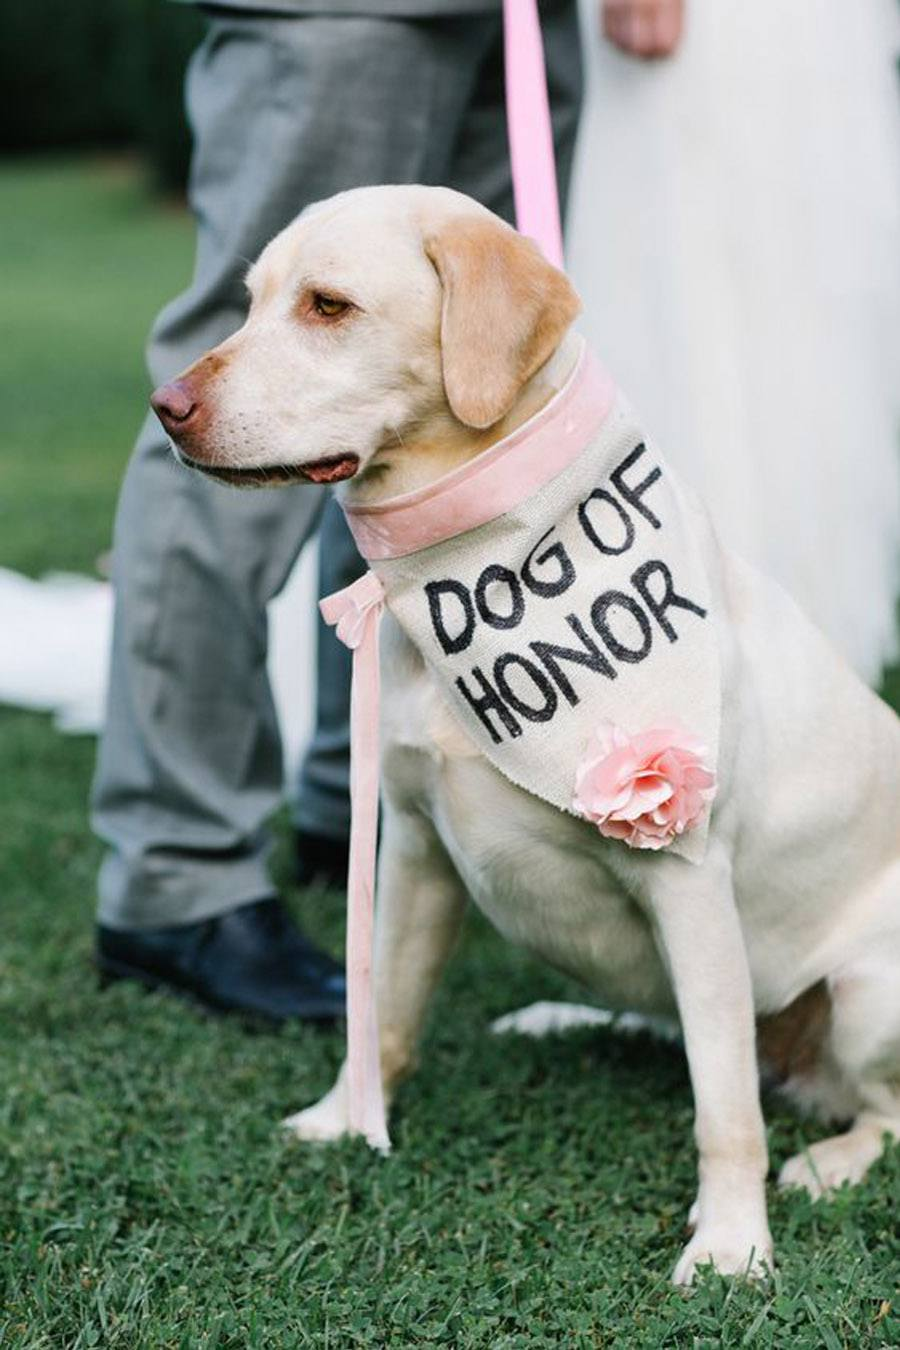 DOG OF HONOR-PERRO DE HONOR dog-of-honor